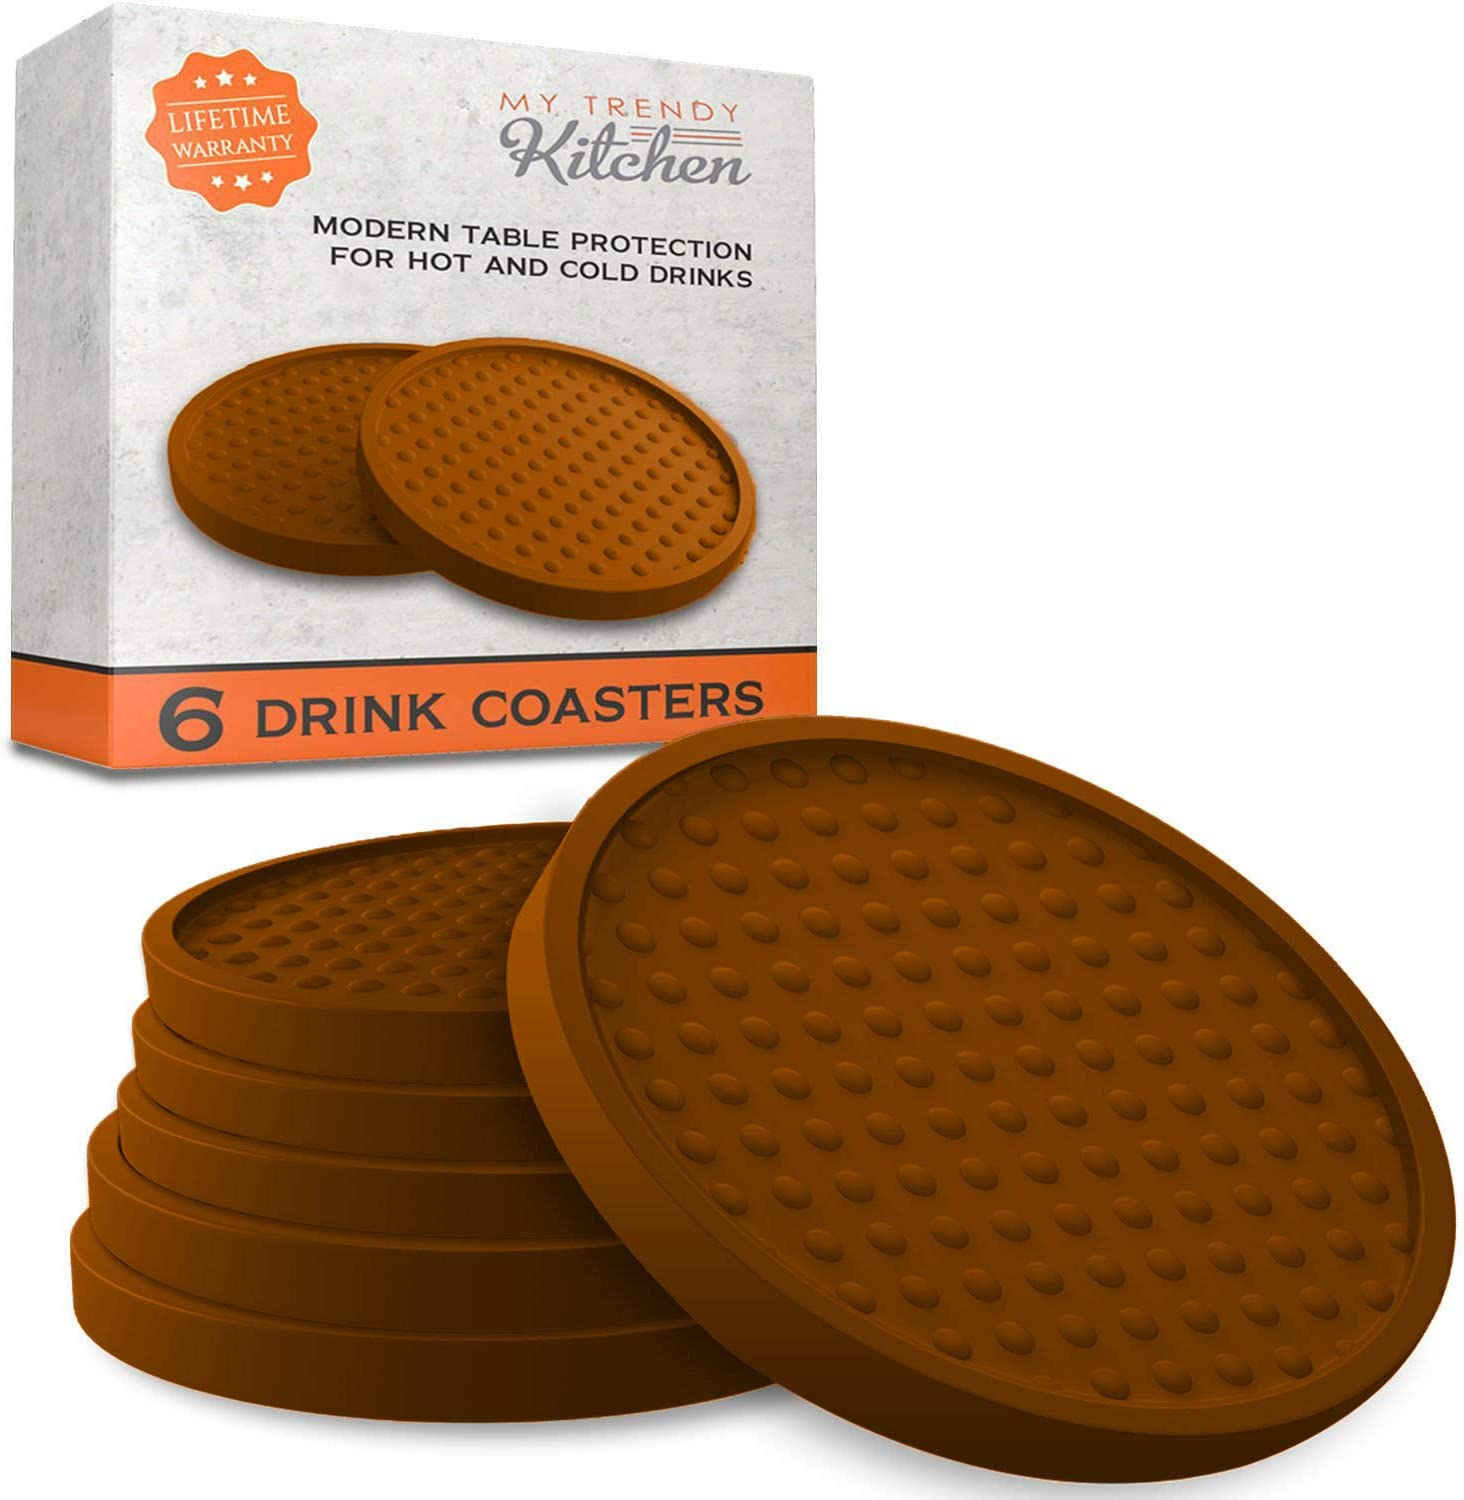 My Trendy Kitchen Large Drink Coasters - Absorbs Moisture and Prevents Table Damage, Modern Brown Rubber Coaster with Non-Slip Bottom for Drinking Glasses, 6 Pack